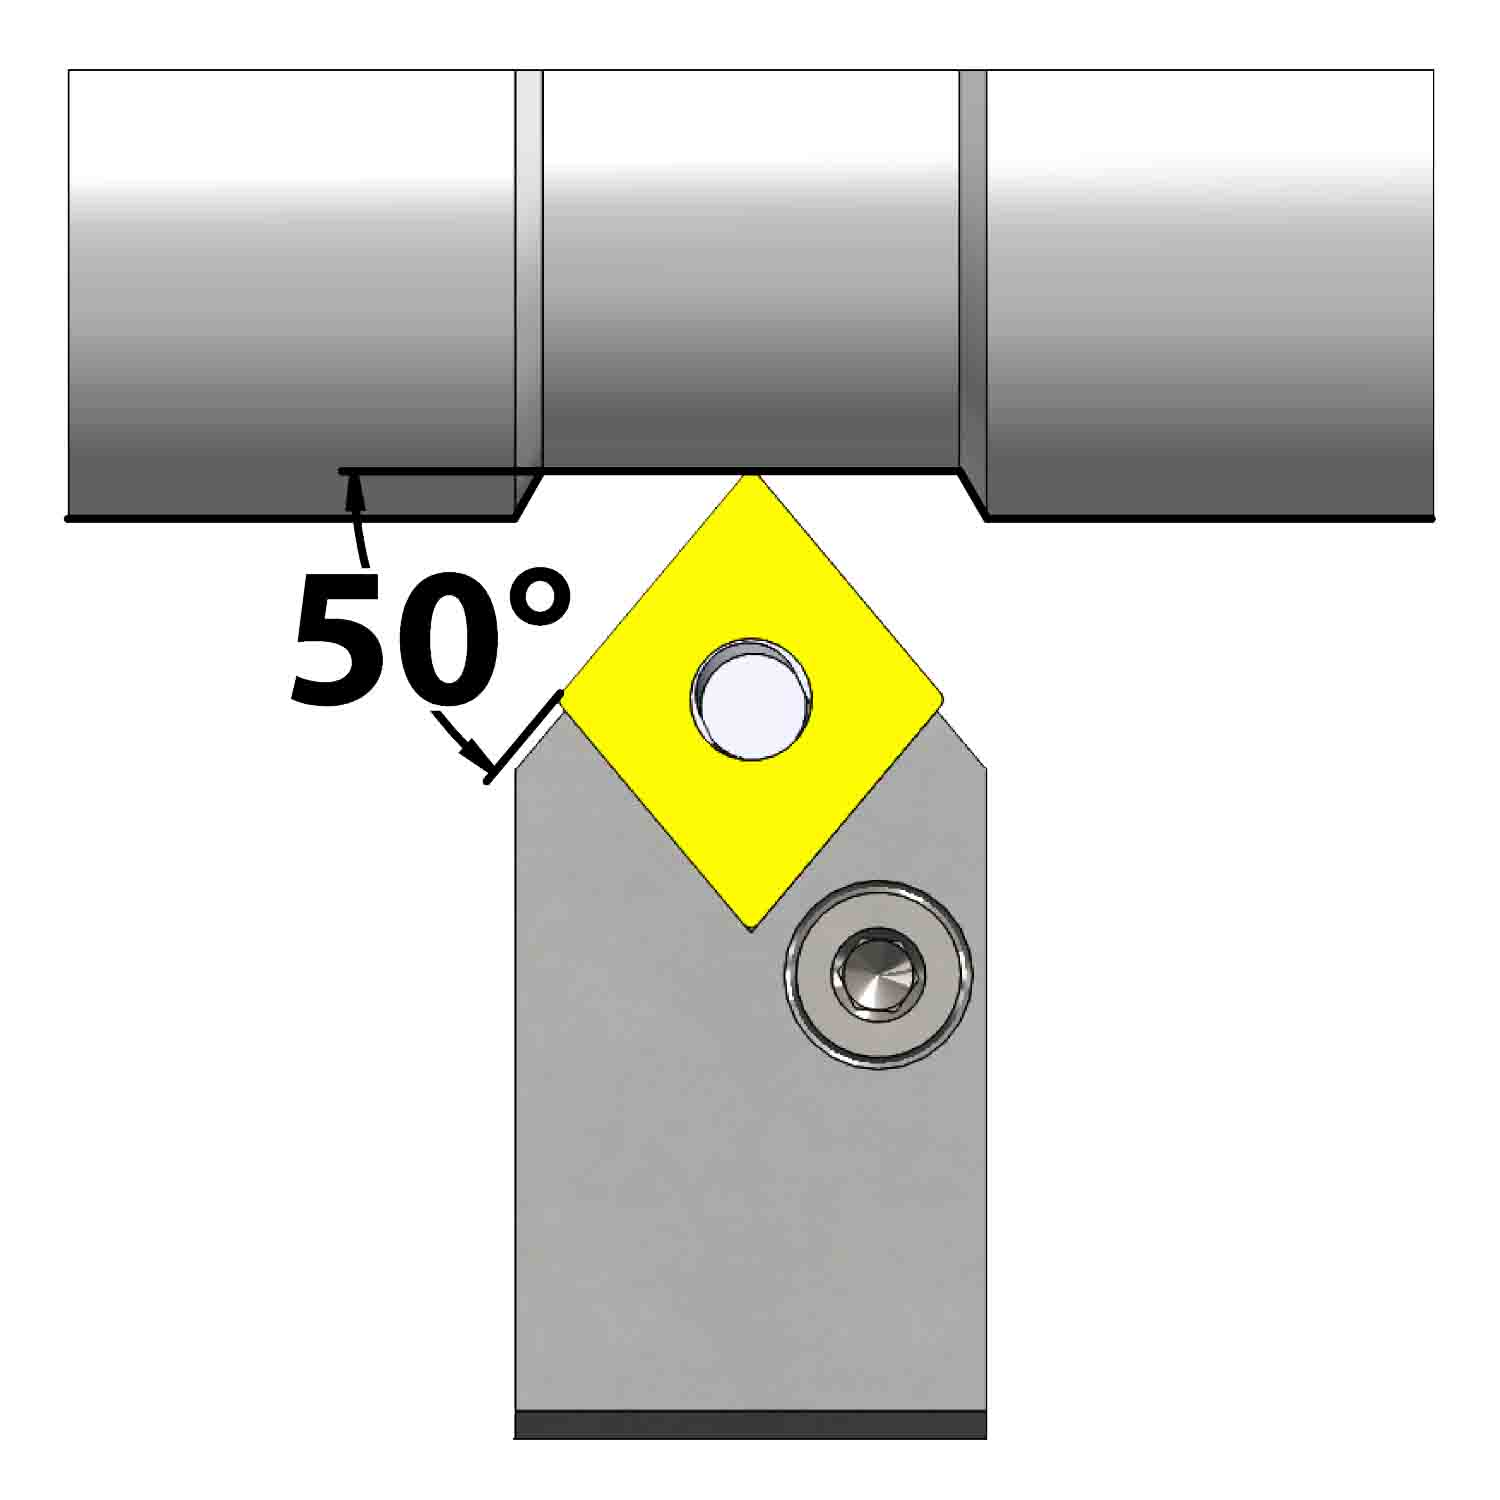 External turning<br />Lever lock clamping<br />PCMN N